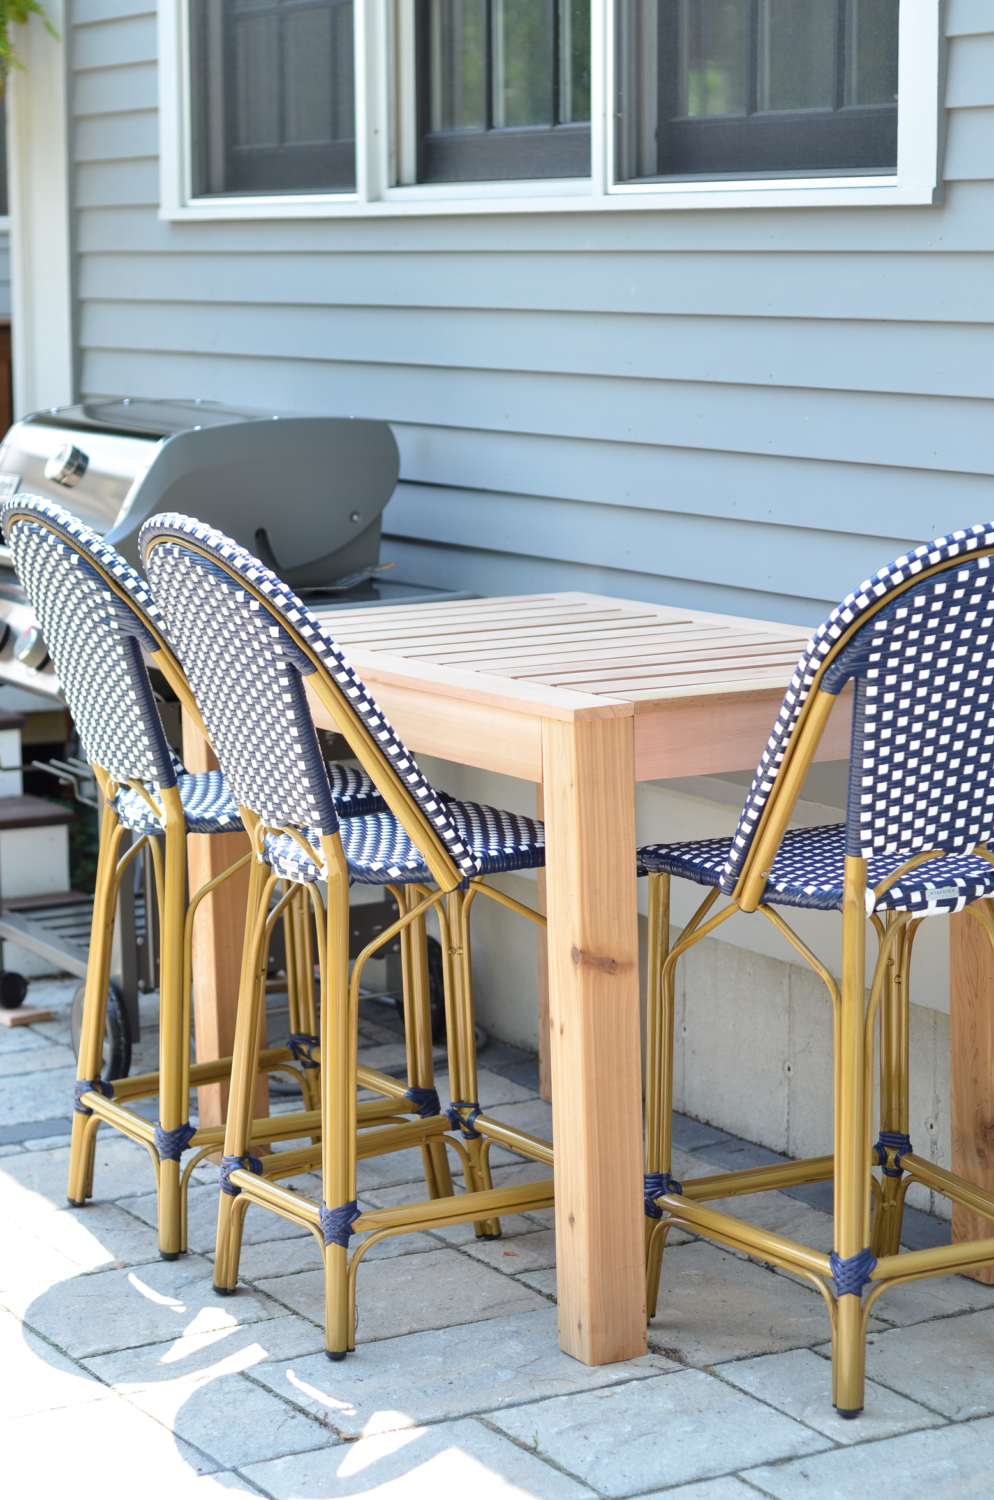 FREE plans for building this DIY outdoor bar table - super easy and perfect for next to a grill, for extra seating, for serving space, or as a drinks station!